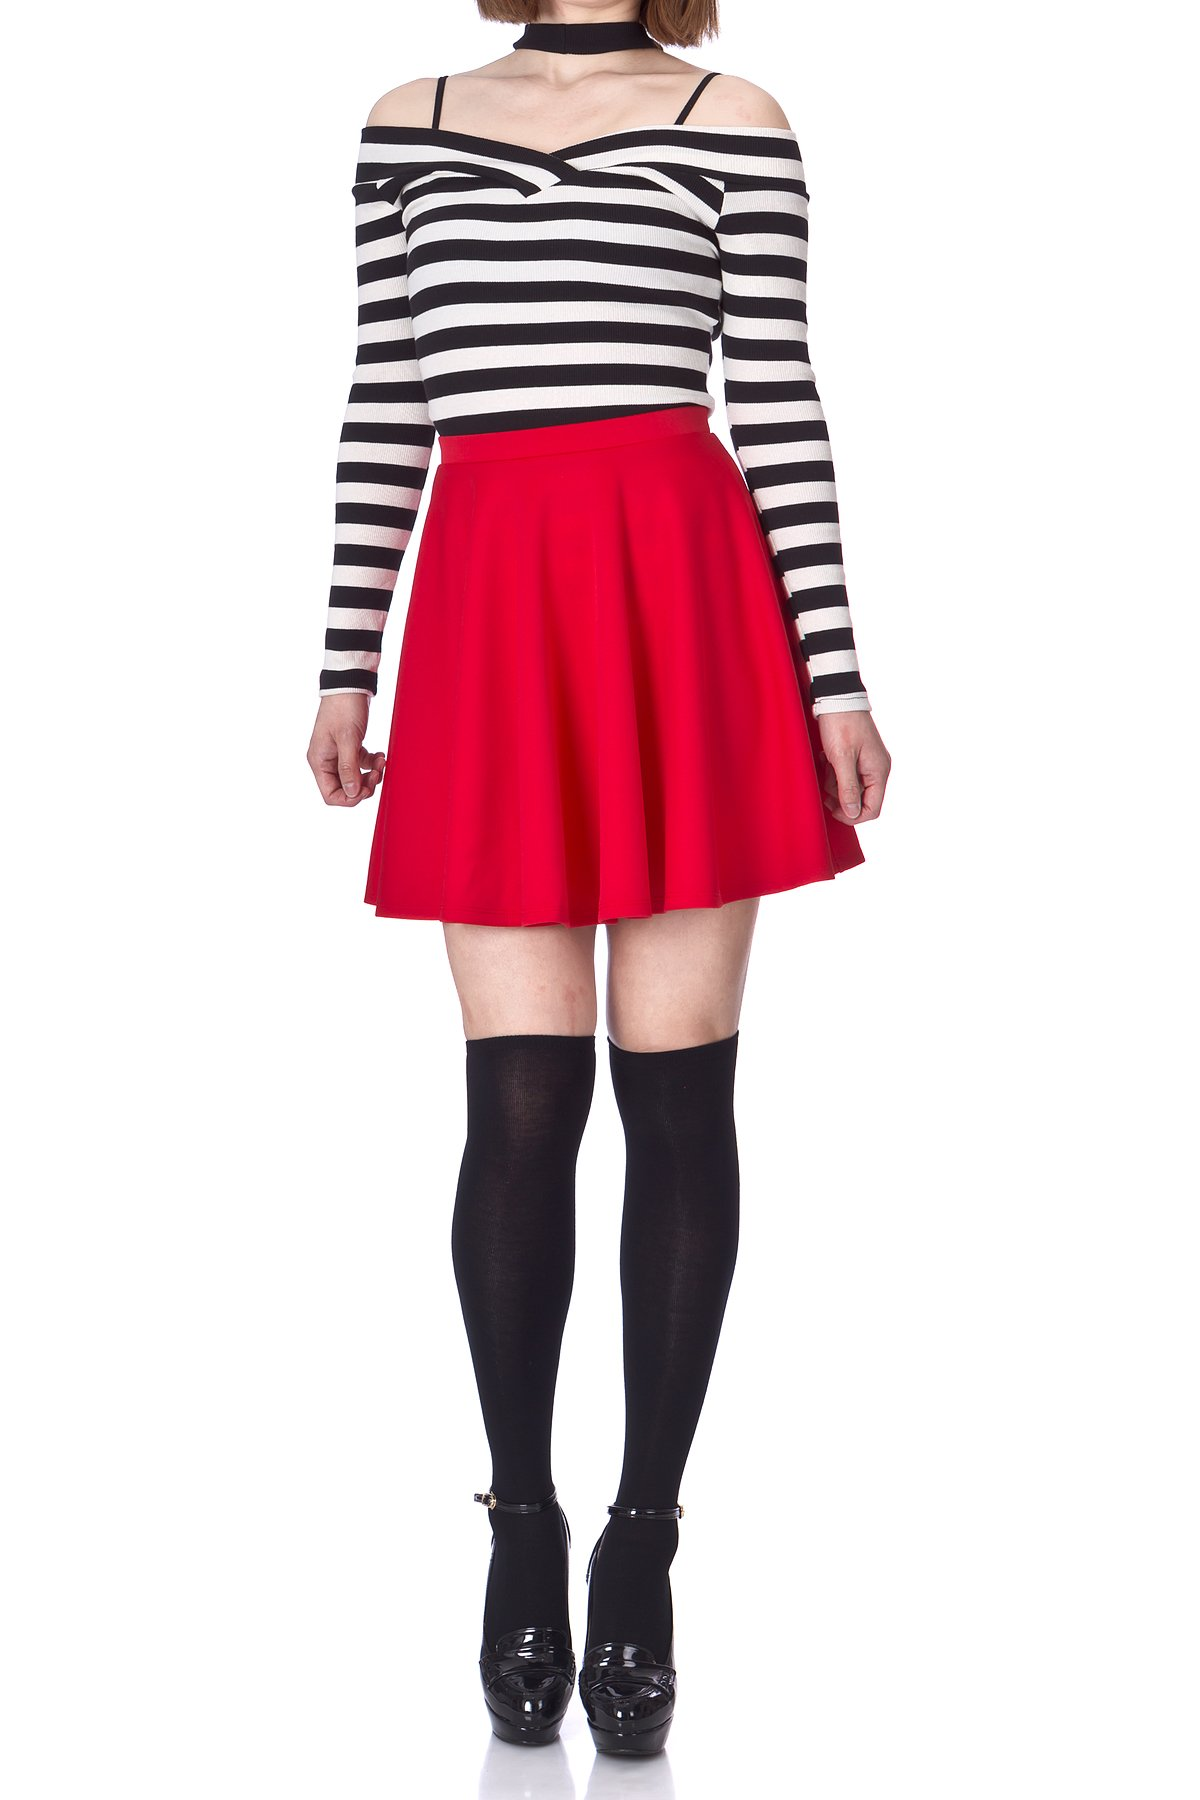 Flouncy High Waist A line Full Flared Circle Swing Dance Party Casual Skater Short Mini Skirt Red 03 2